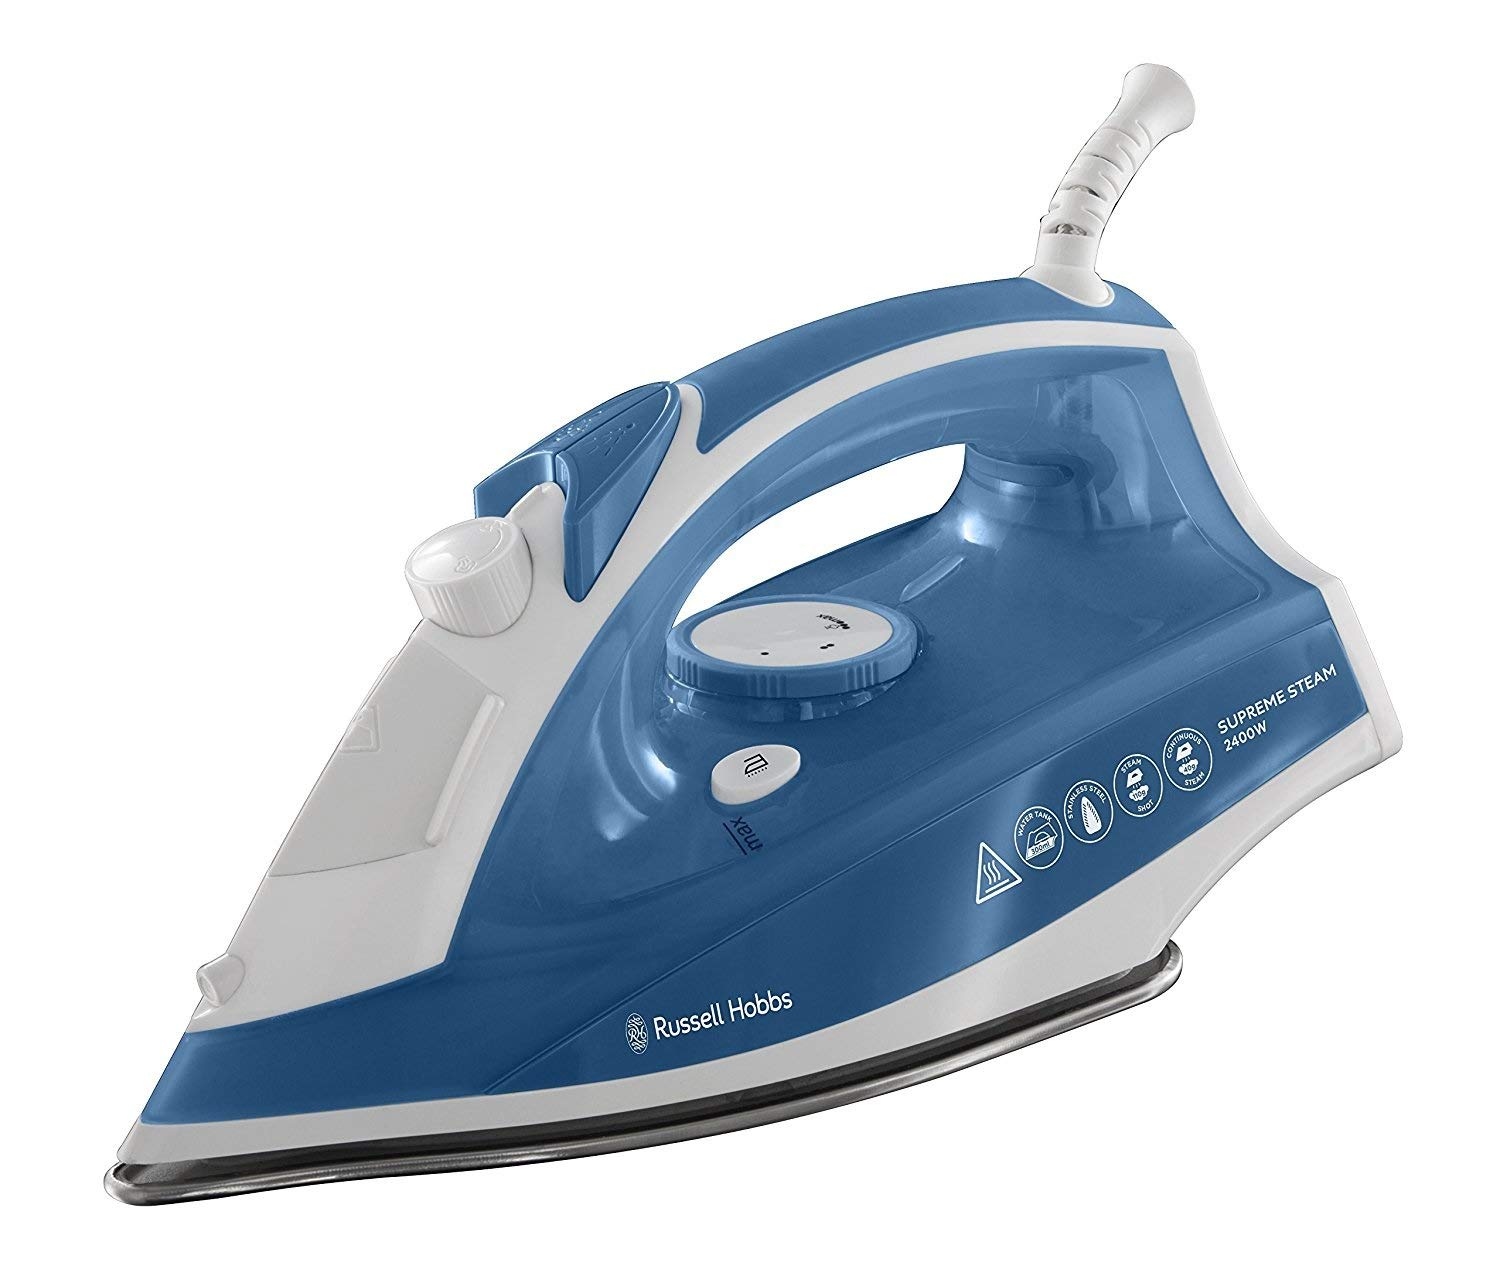 Blue Signature S22002 Steam Generator Stainless Steel Soleplate 2300 W